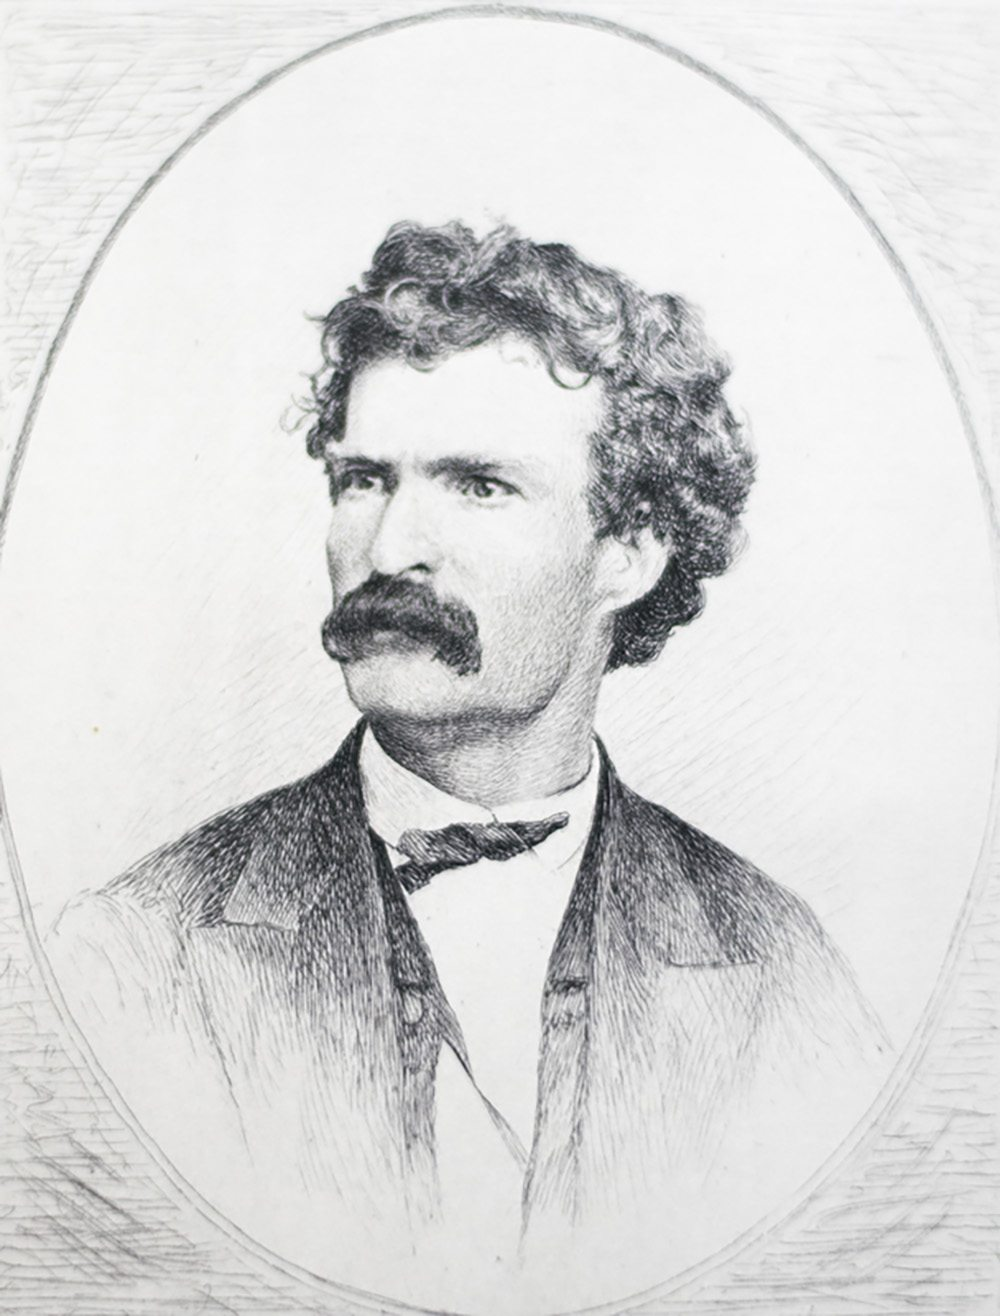 The Writings of Mark Twain.  (Including The Adventures of Tom Sawyer; The Adventures of Huckleberry Finn; Innocents Abroad; Life on the Mississippi; A Connecticut Yankee in King Arthur's Court; The Prince and the Pauper; A Tramp Abroad).